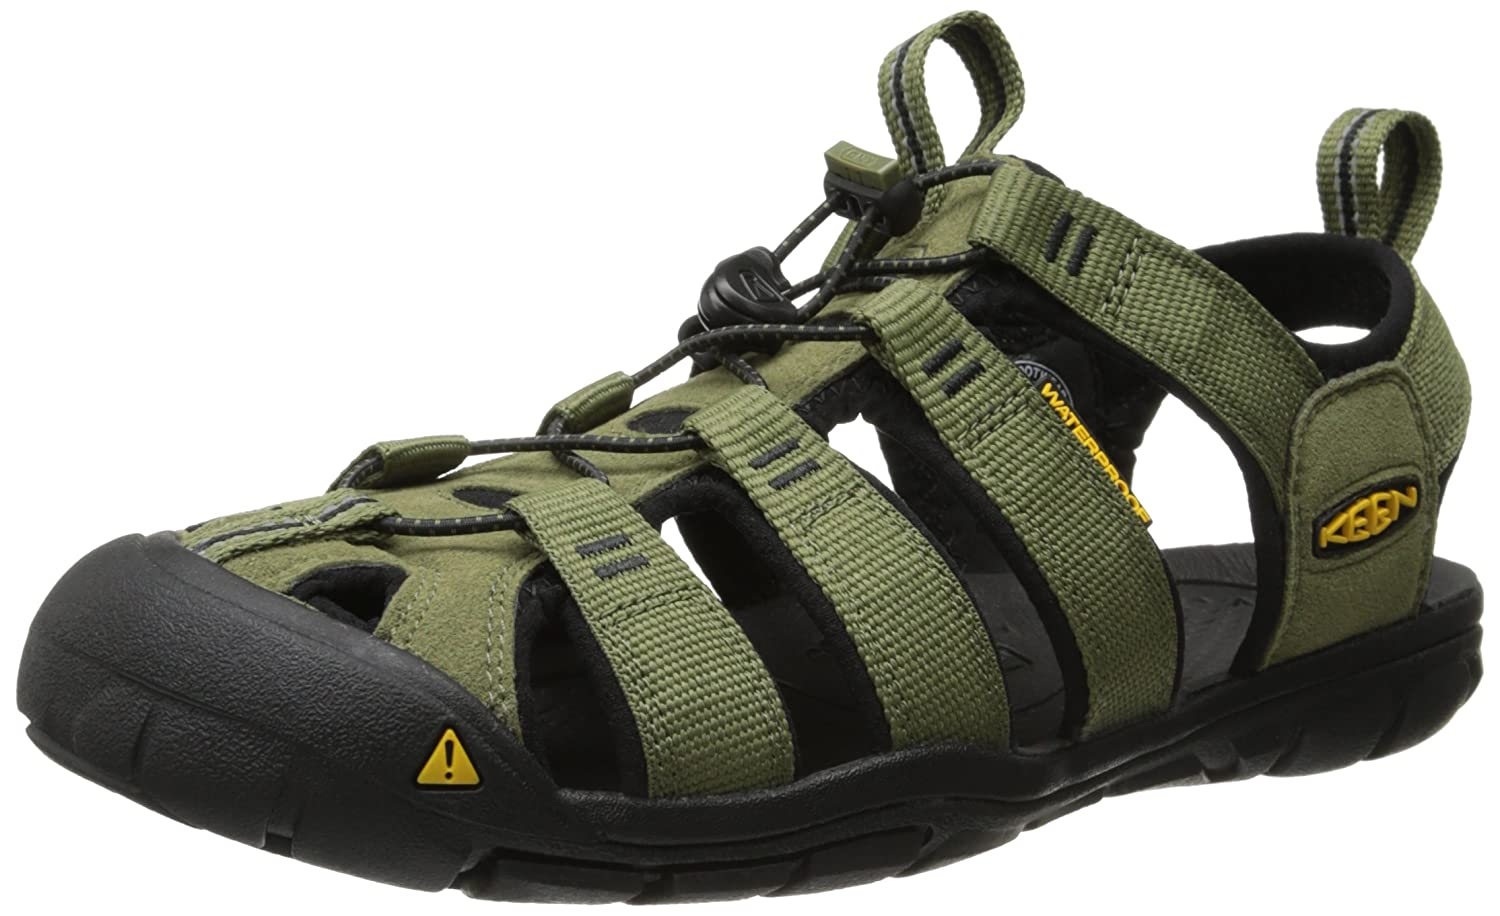 [キーン] KEEN サンダル Clearwater CNX B00LH7X6GU 11.5 mens_us Burnt Olive/Black